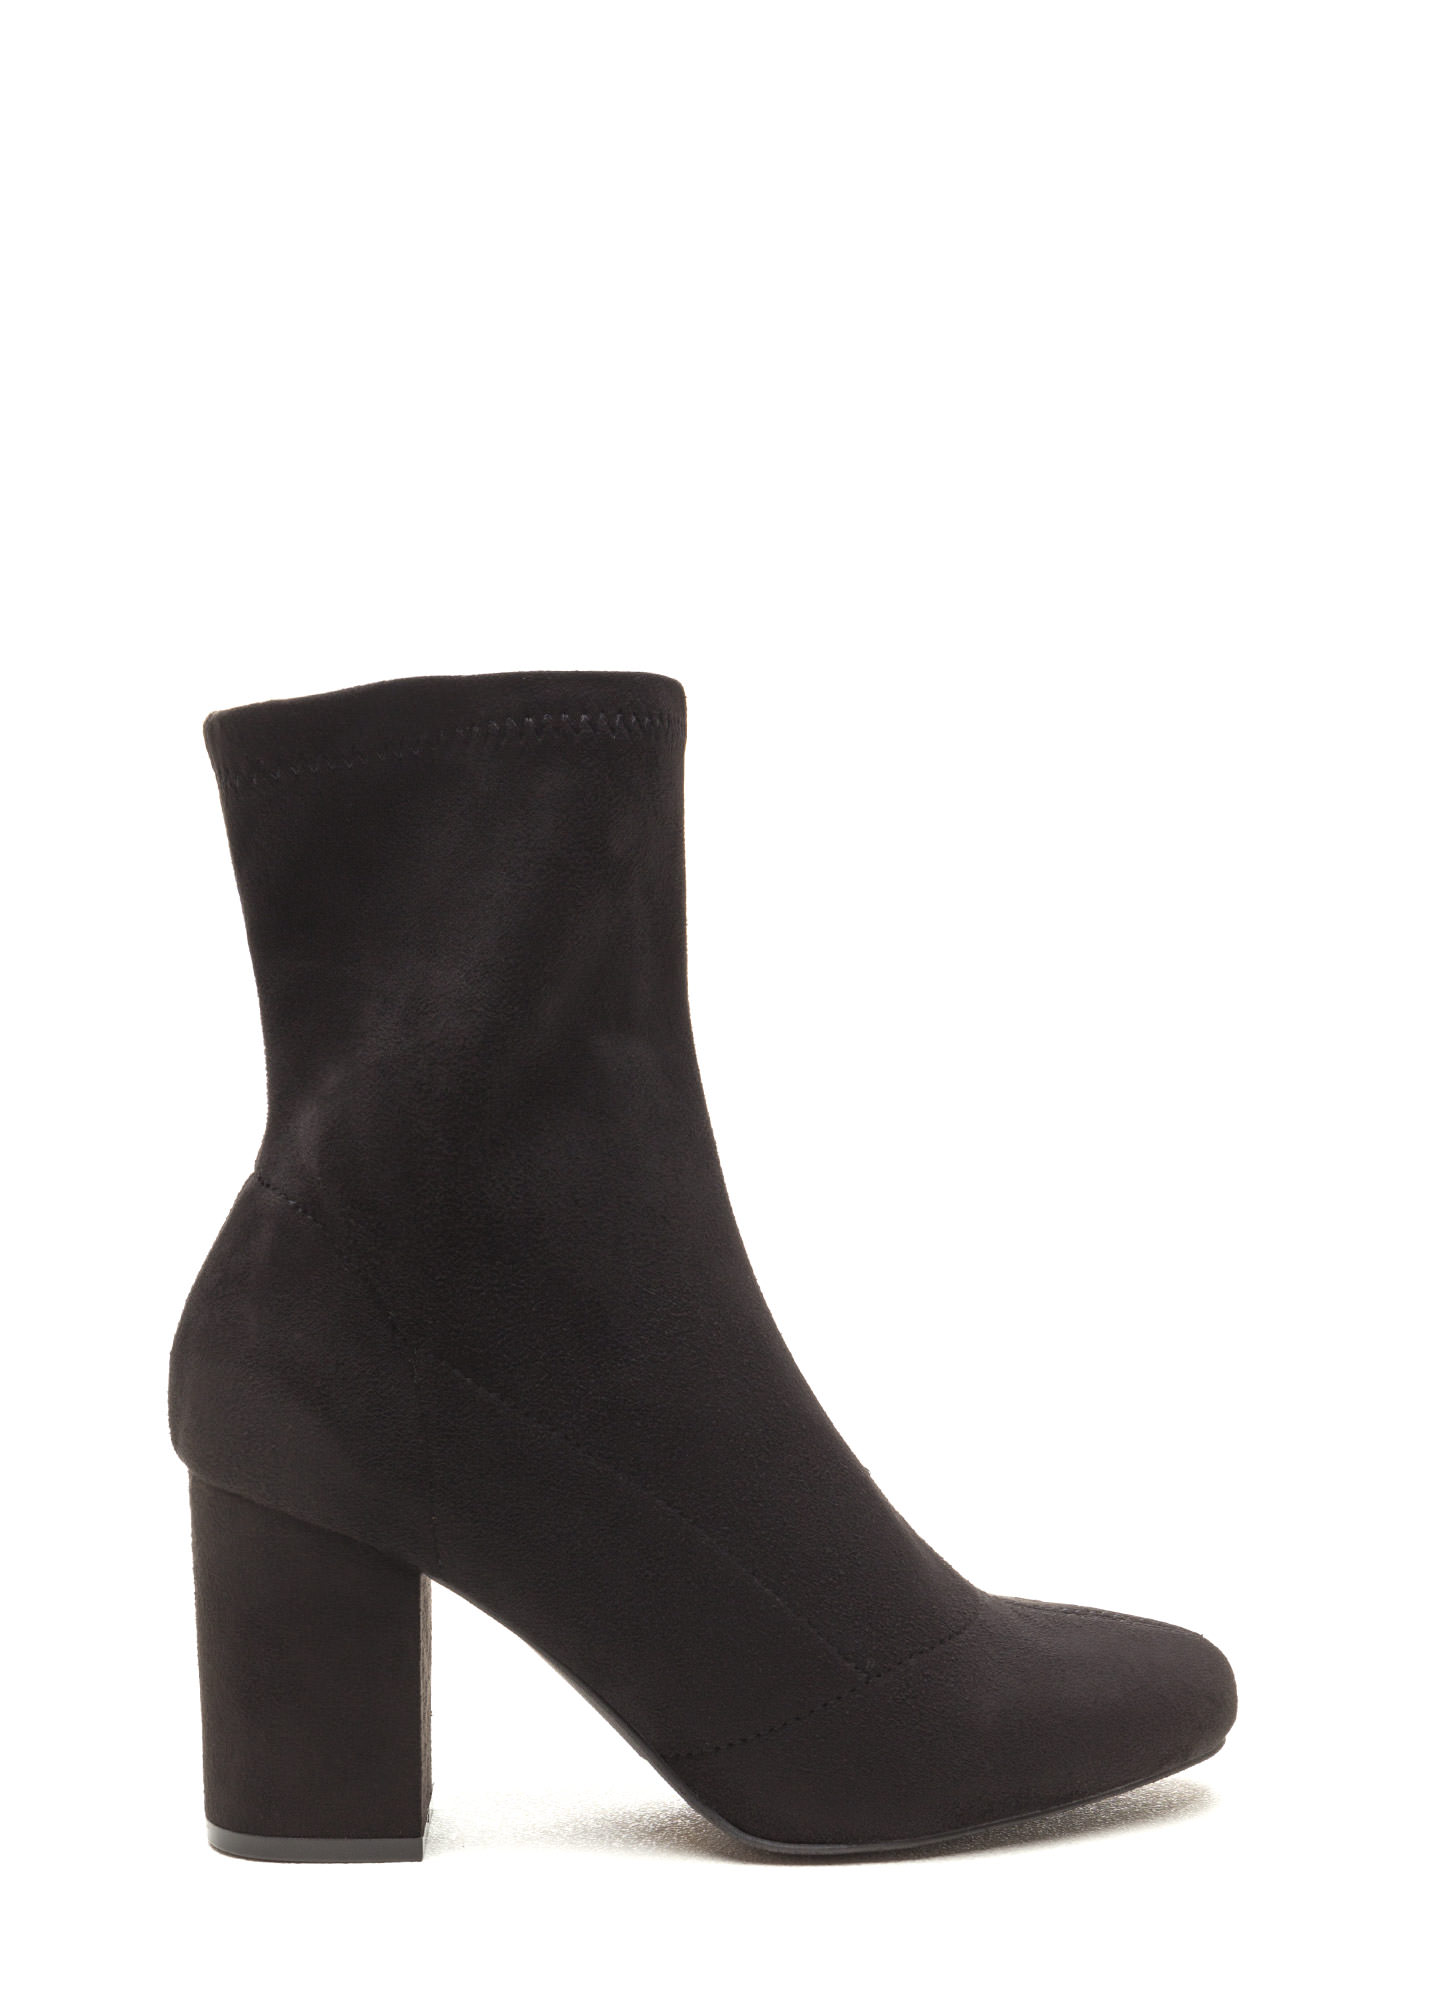 All My Days Faux Suede Chunky Booties BLACK